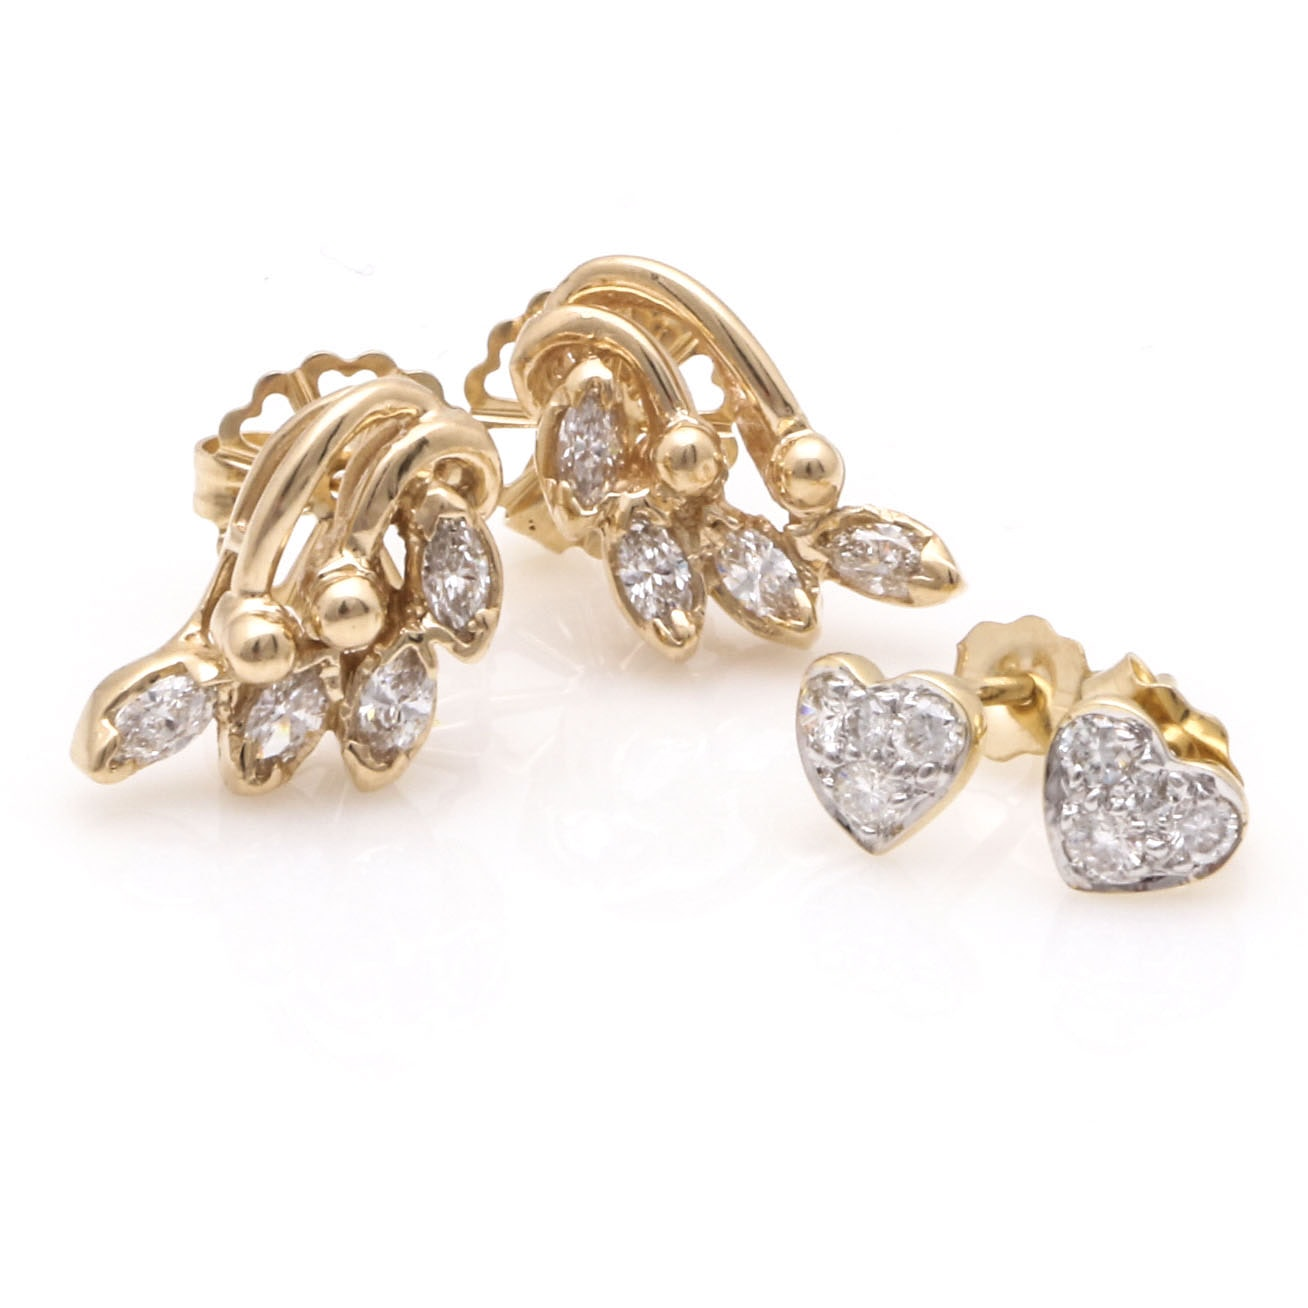 14K Yellow Gold Diamond Heart and Floral Earrings